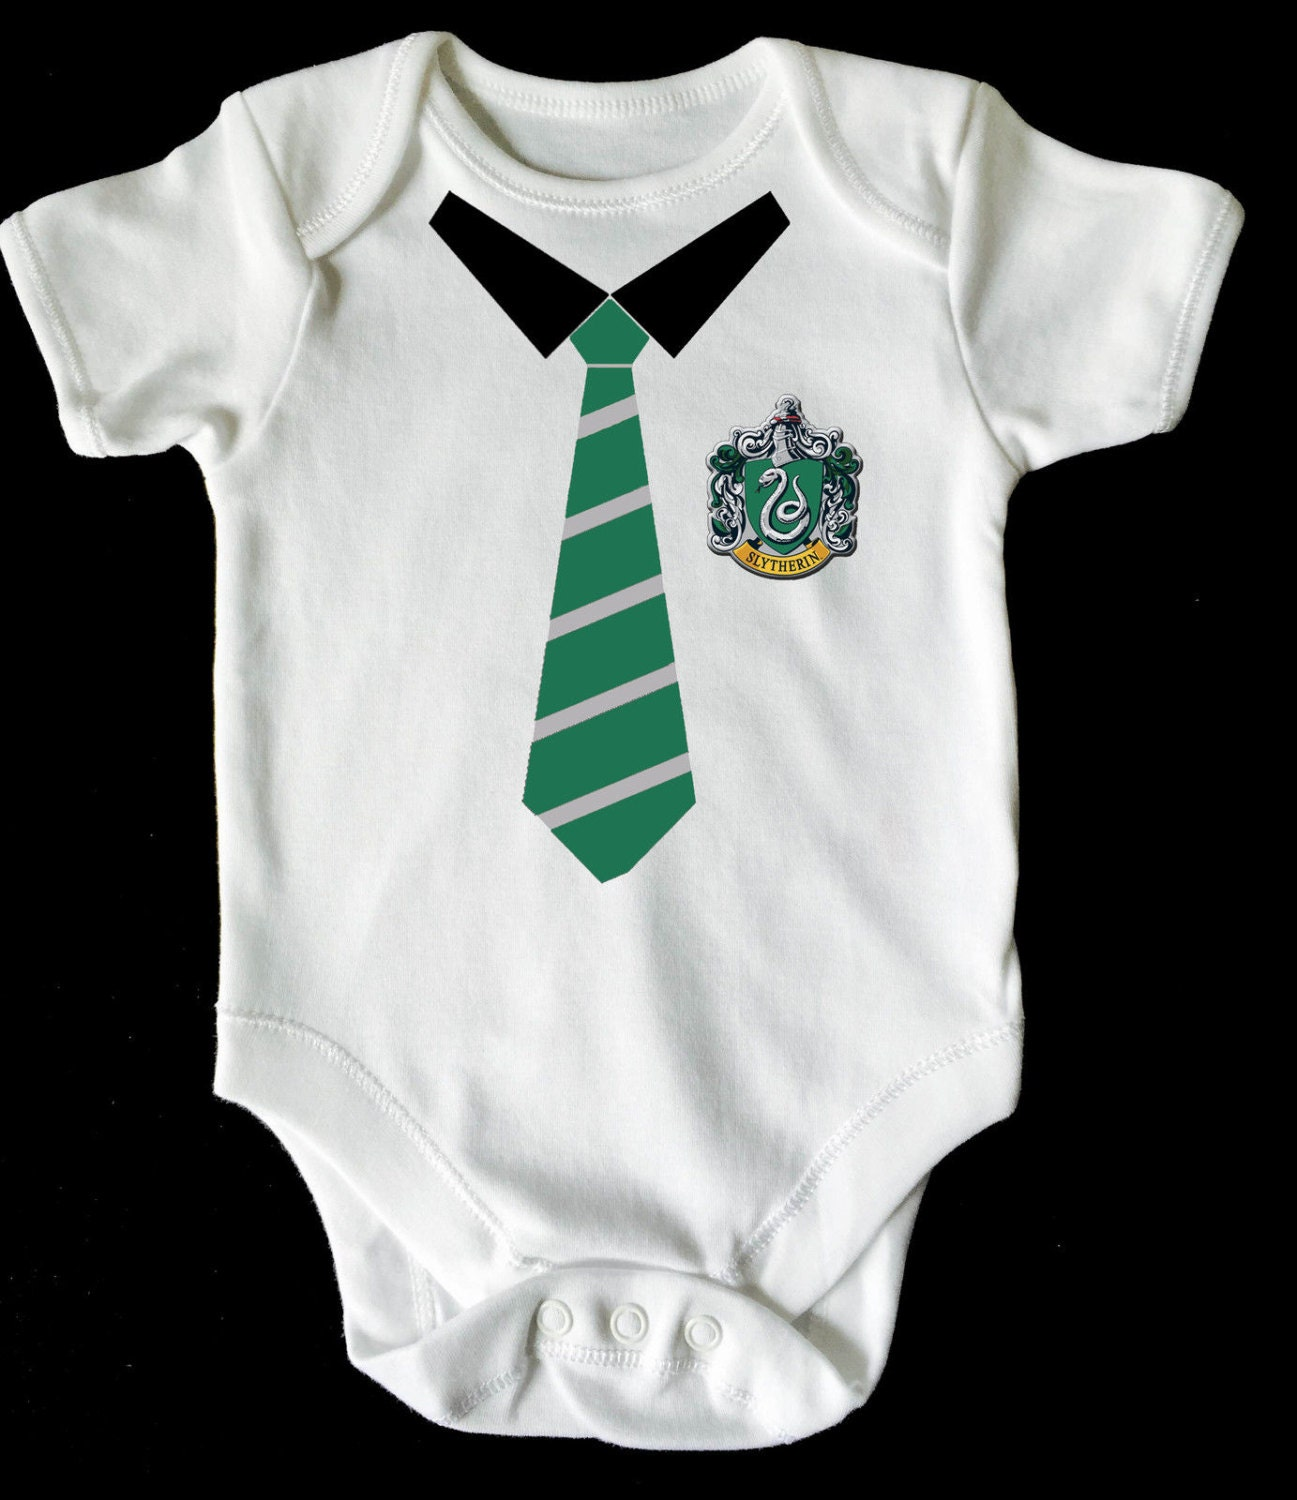 Harry potter slytherin baby vestromperbodysuit